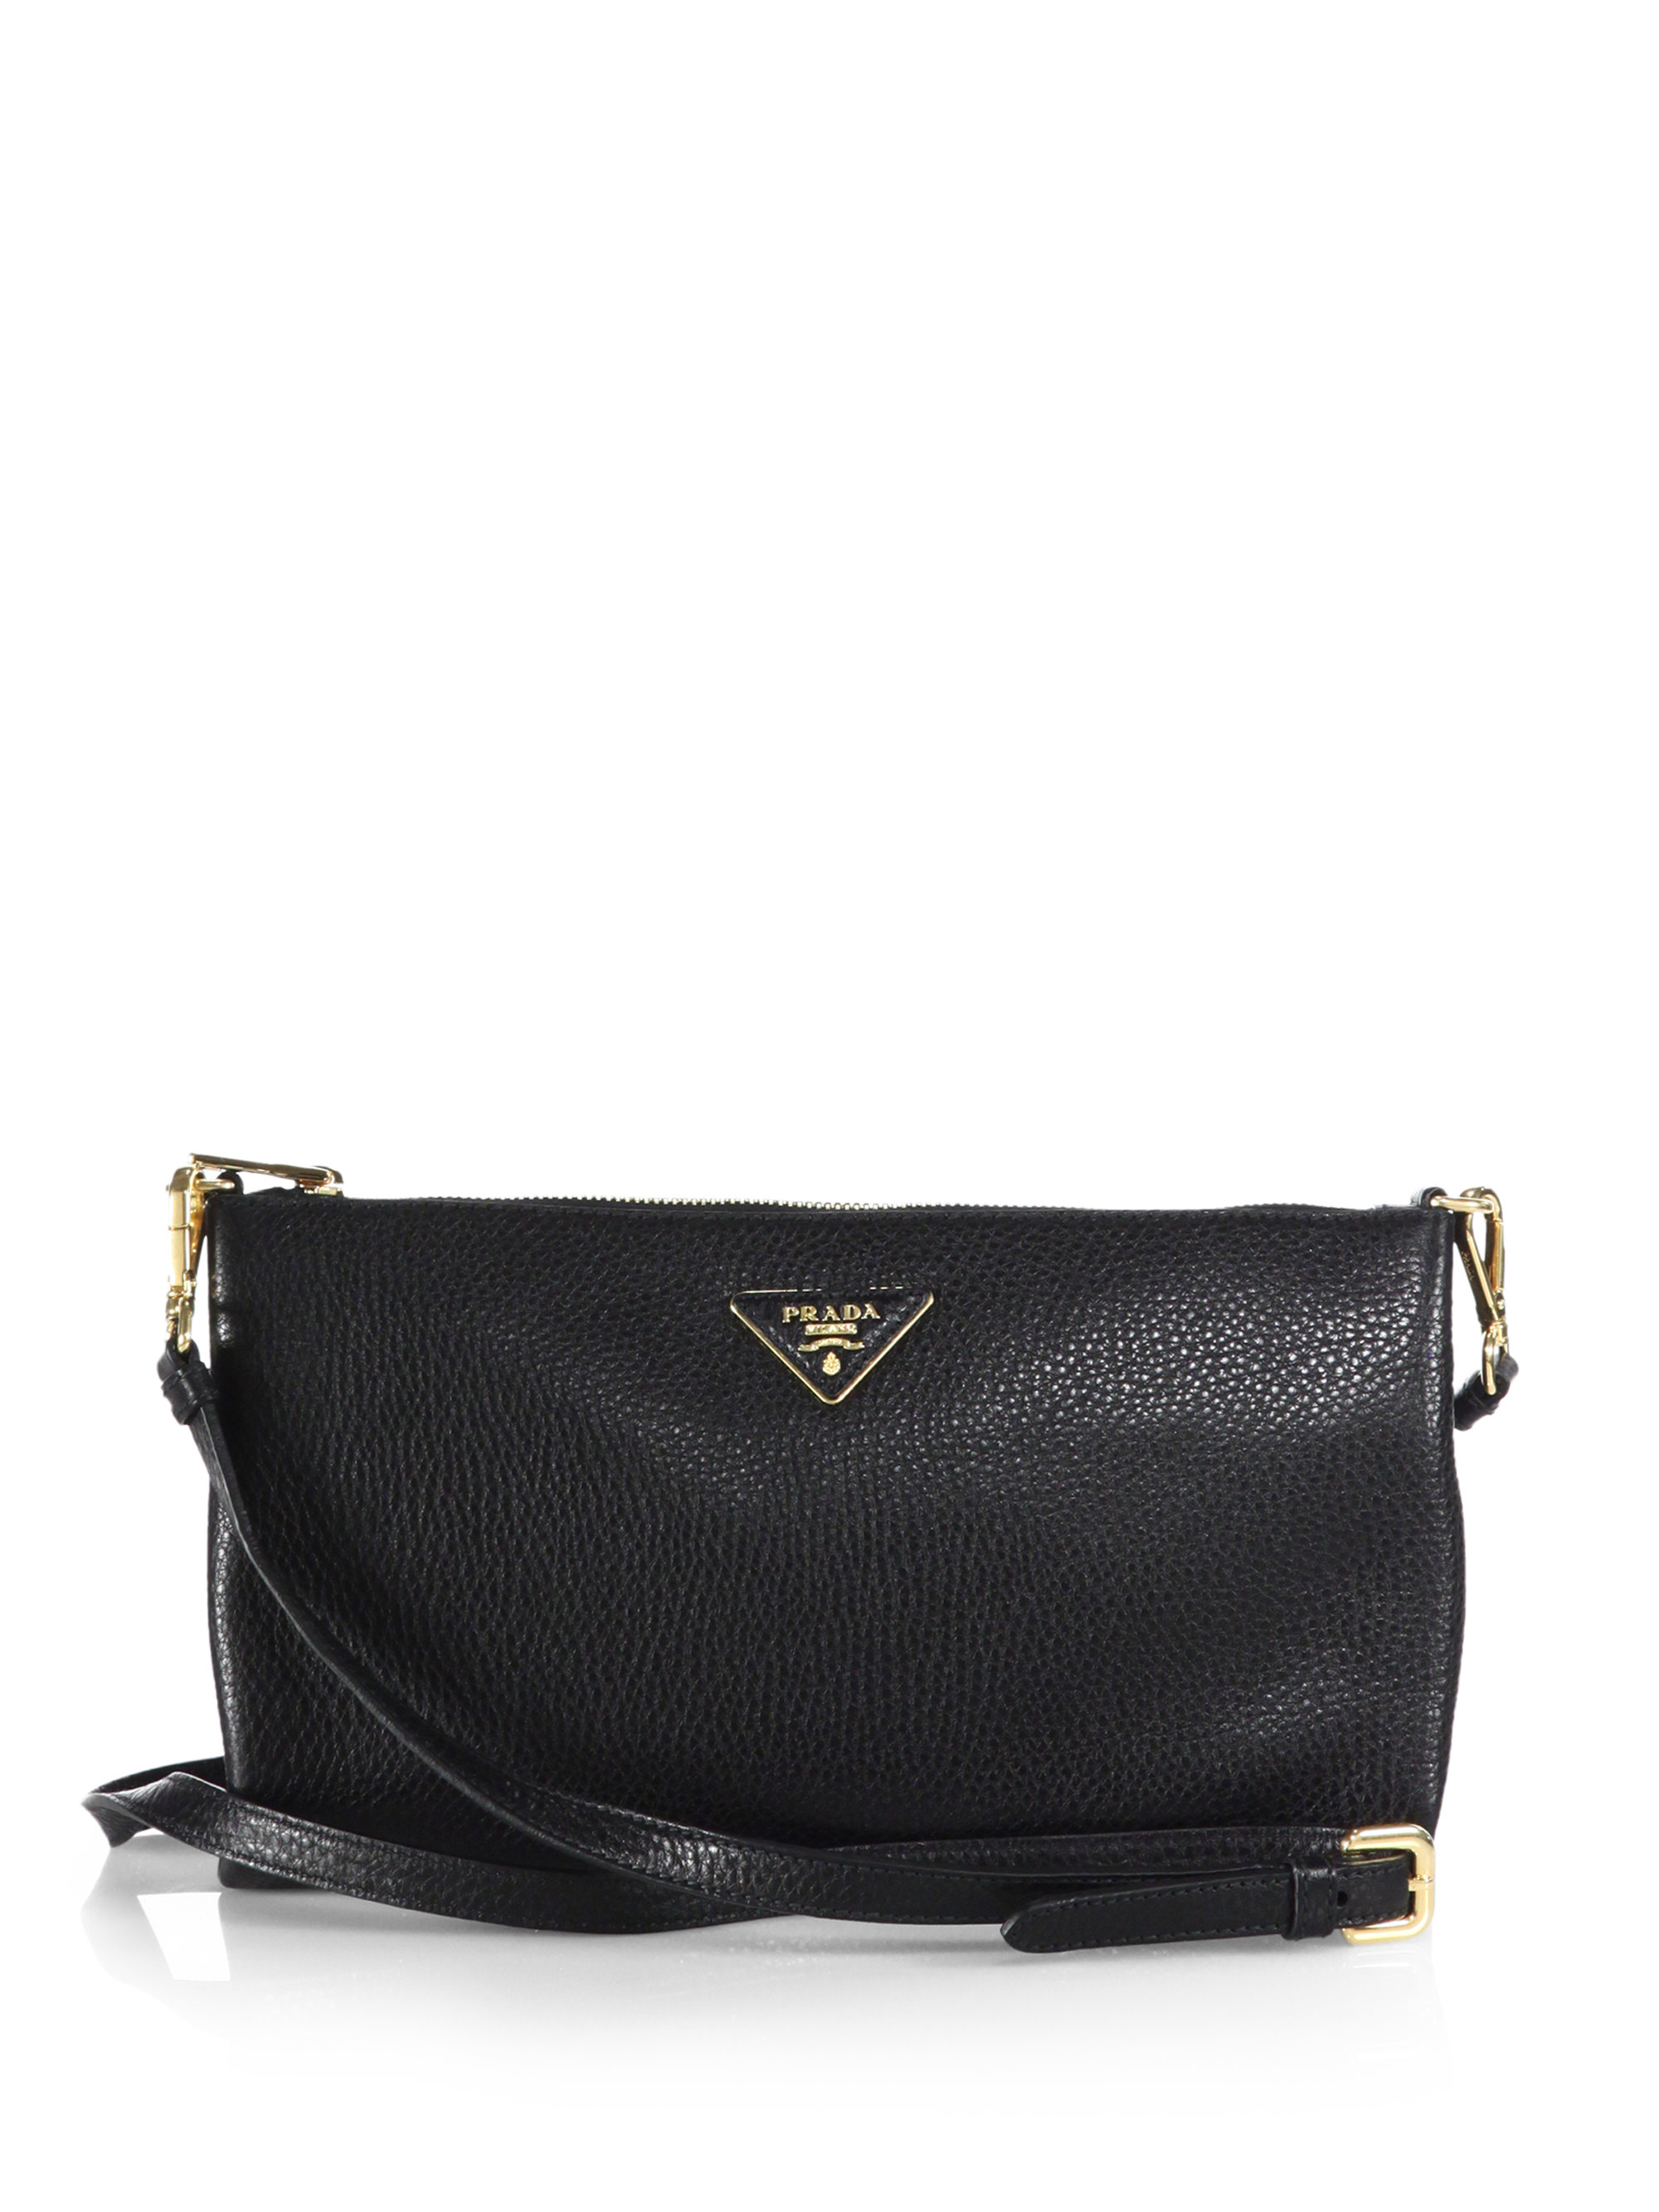 81276b265887 cheap lyst prada daino crossbody bag in black b802c 96c3e